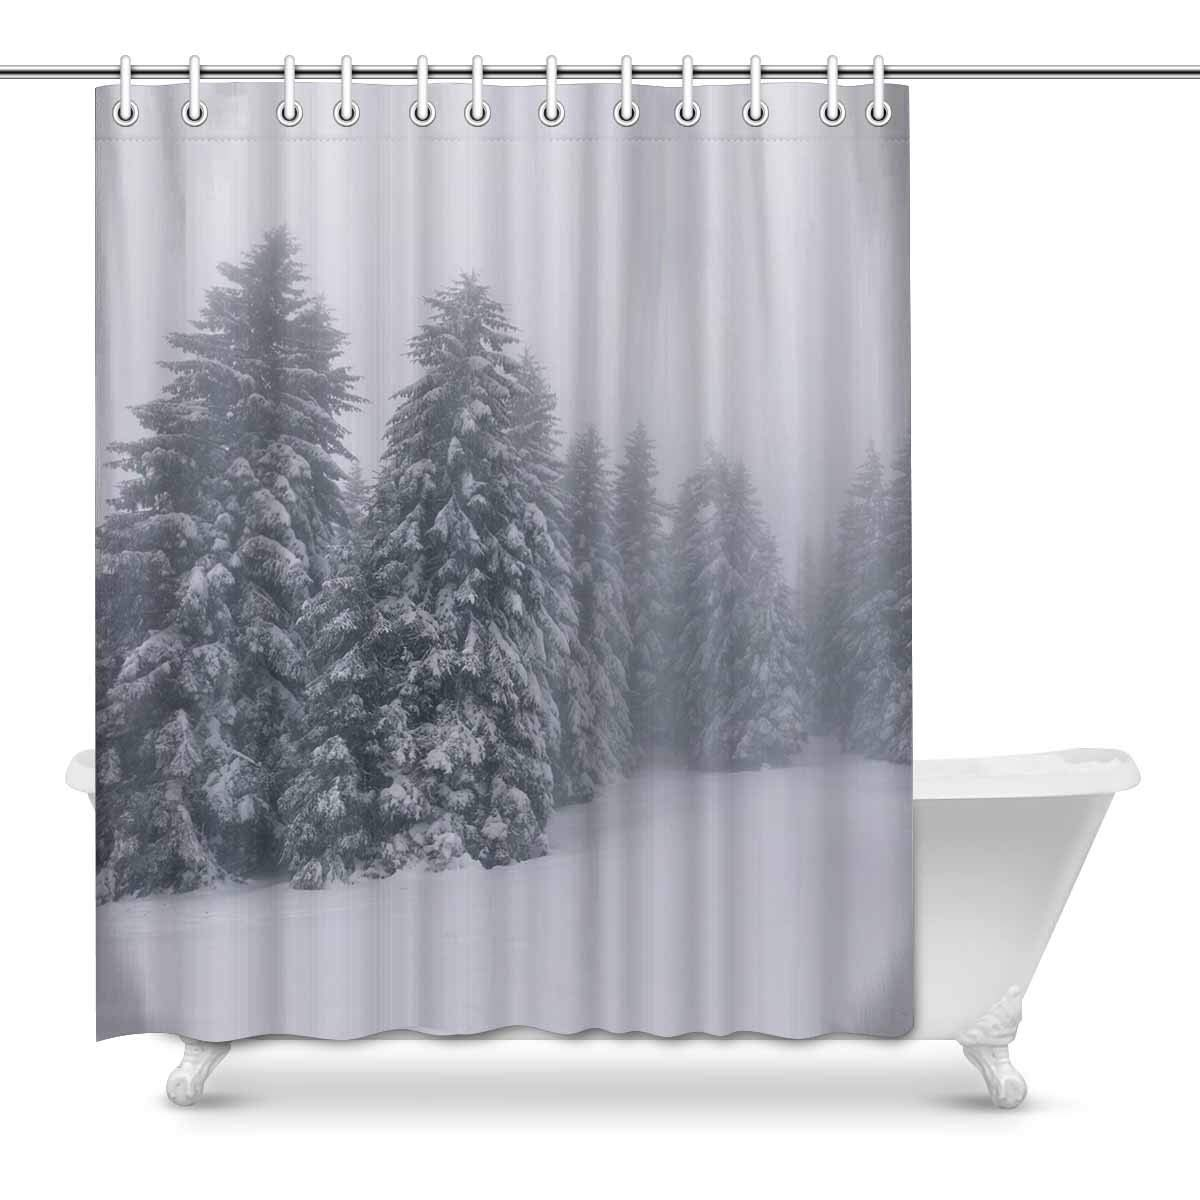 Gckg Vintage Winter Landscape Shower Curtain Froggy Forest Polyester Fabric Shower Curtain Bathroom Sets 60x72 Inches